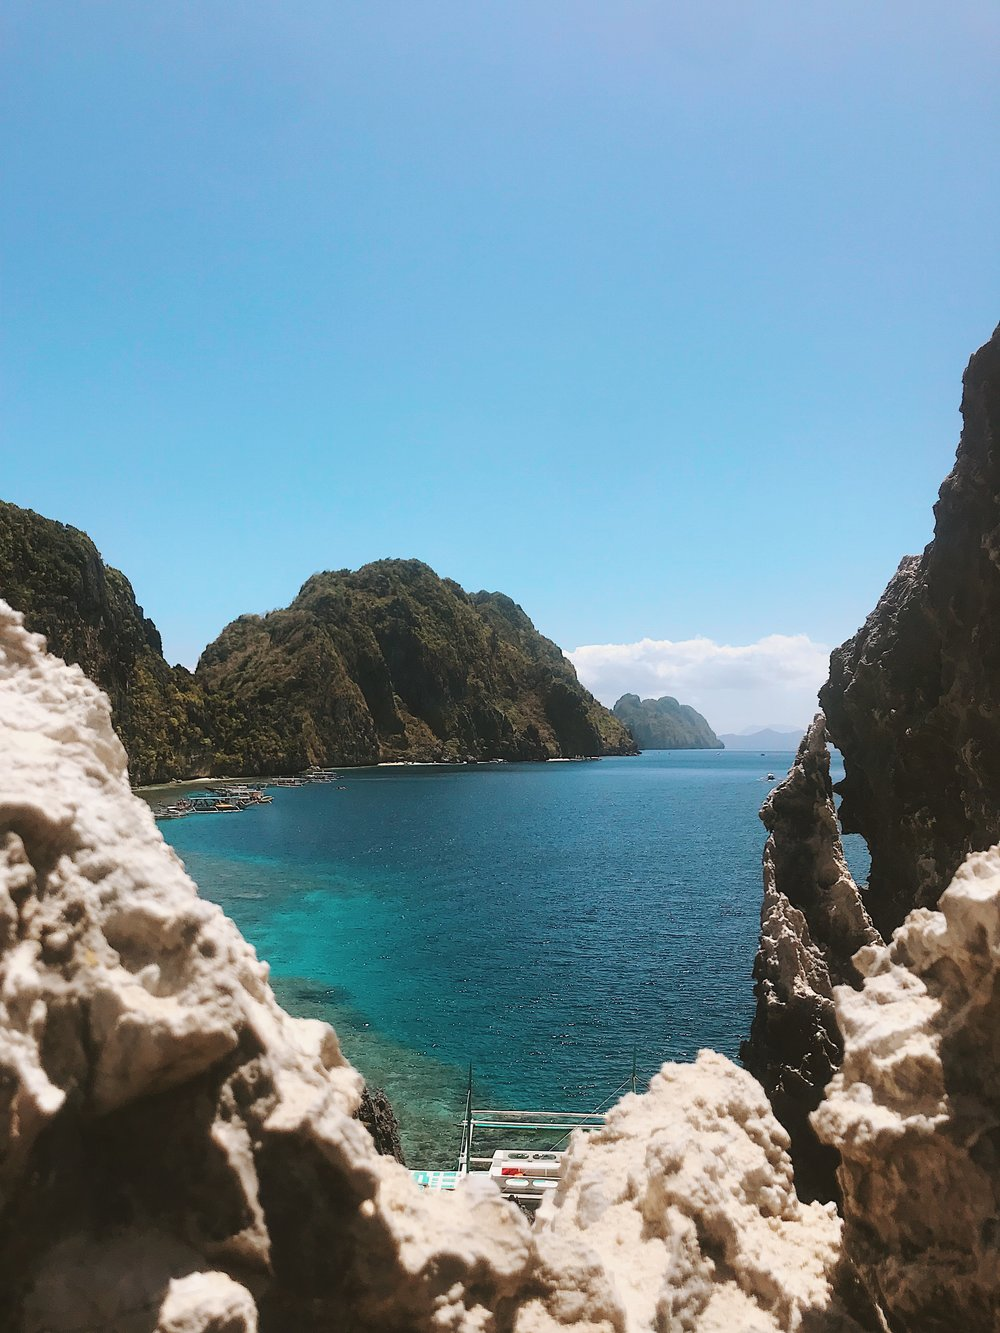 El Nido's calling - Our founder took the trip of a lifetime to The Philippines to chase waterfalls and her ancestral roots. Read about her island adventures.